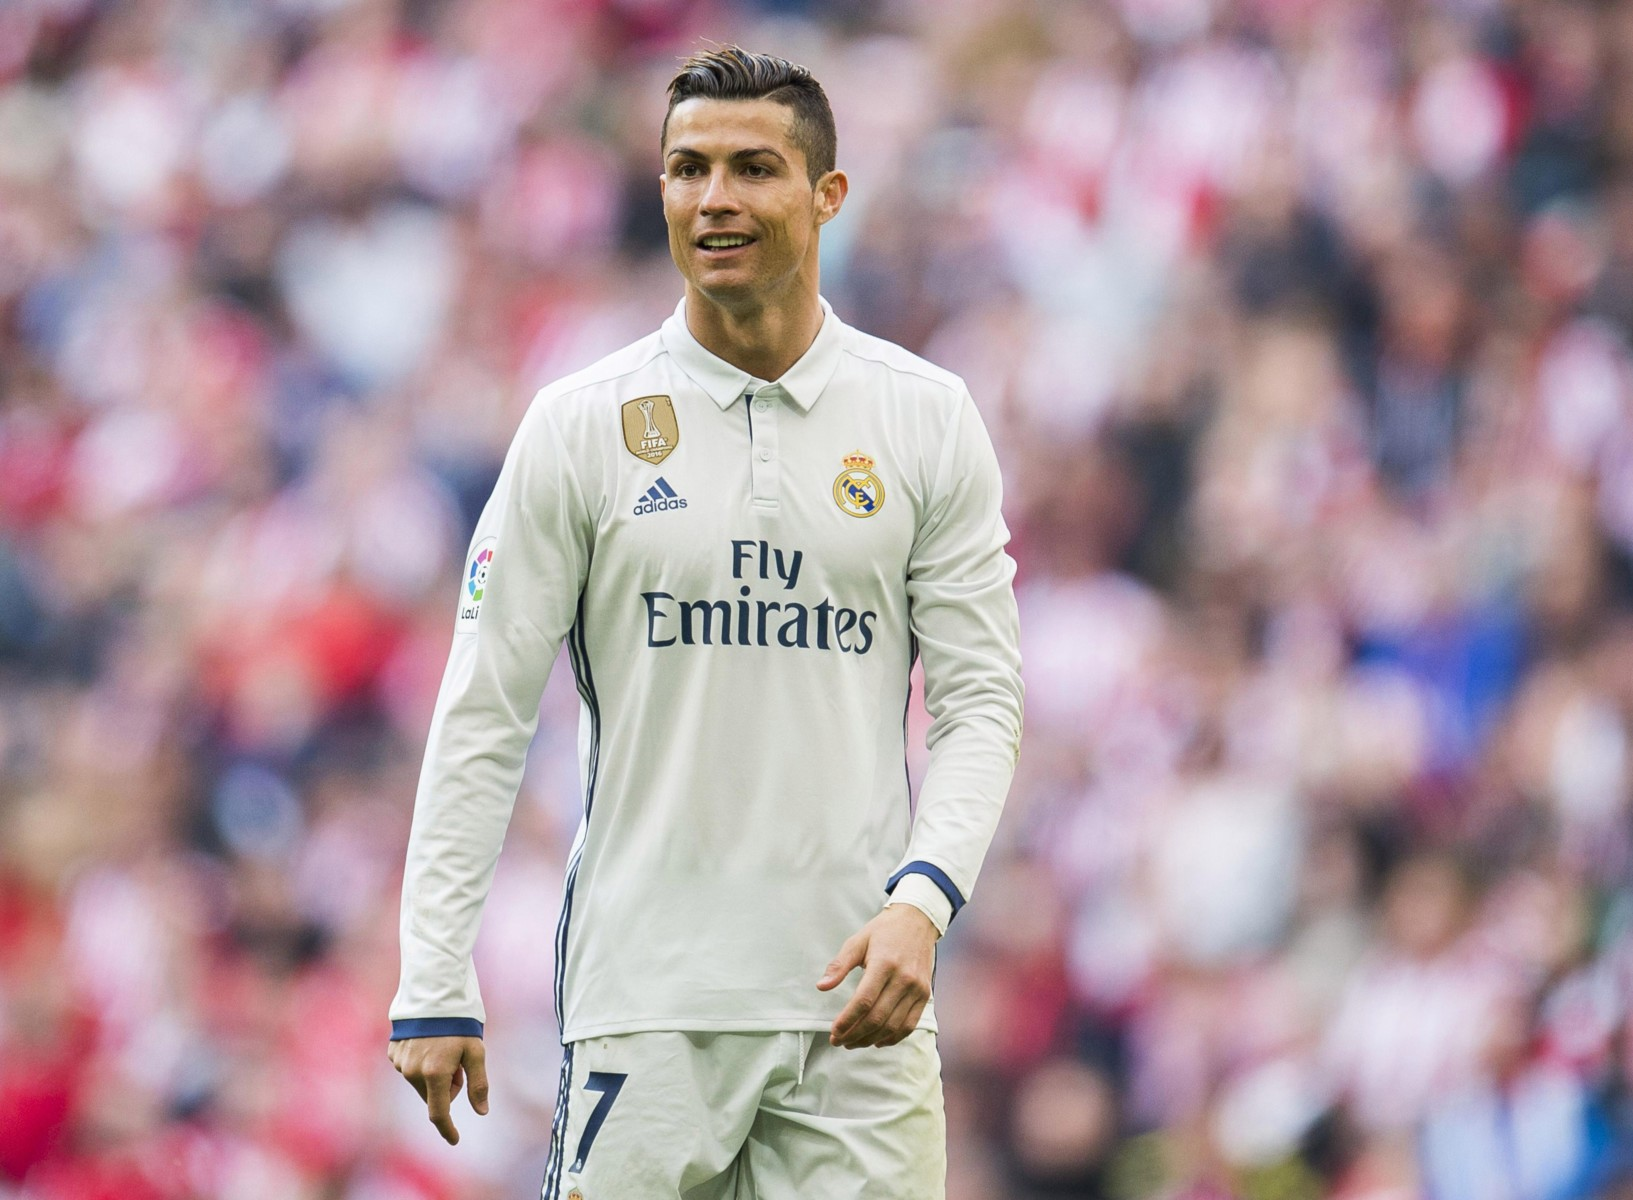 Real Madrid ace Cristiano Ronaldo is on the right wing